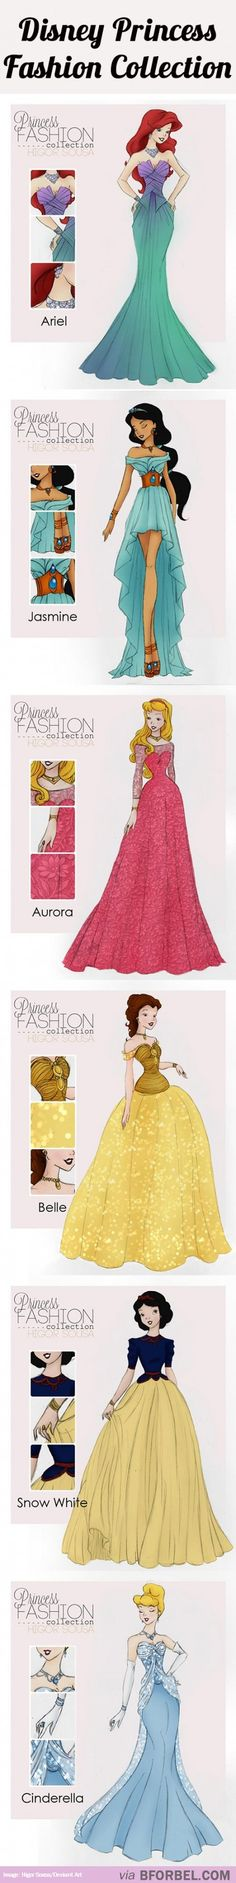 6 Disney Princess Fashion Collection they are really cute! Walt Disney, Disney Pixar, Cute Disney, Disney And Dreamworks, Disney Magic, Disney Movies, Disney Characters, Funny Disney, Disney Stuff